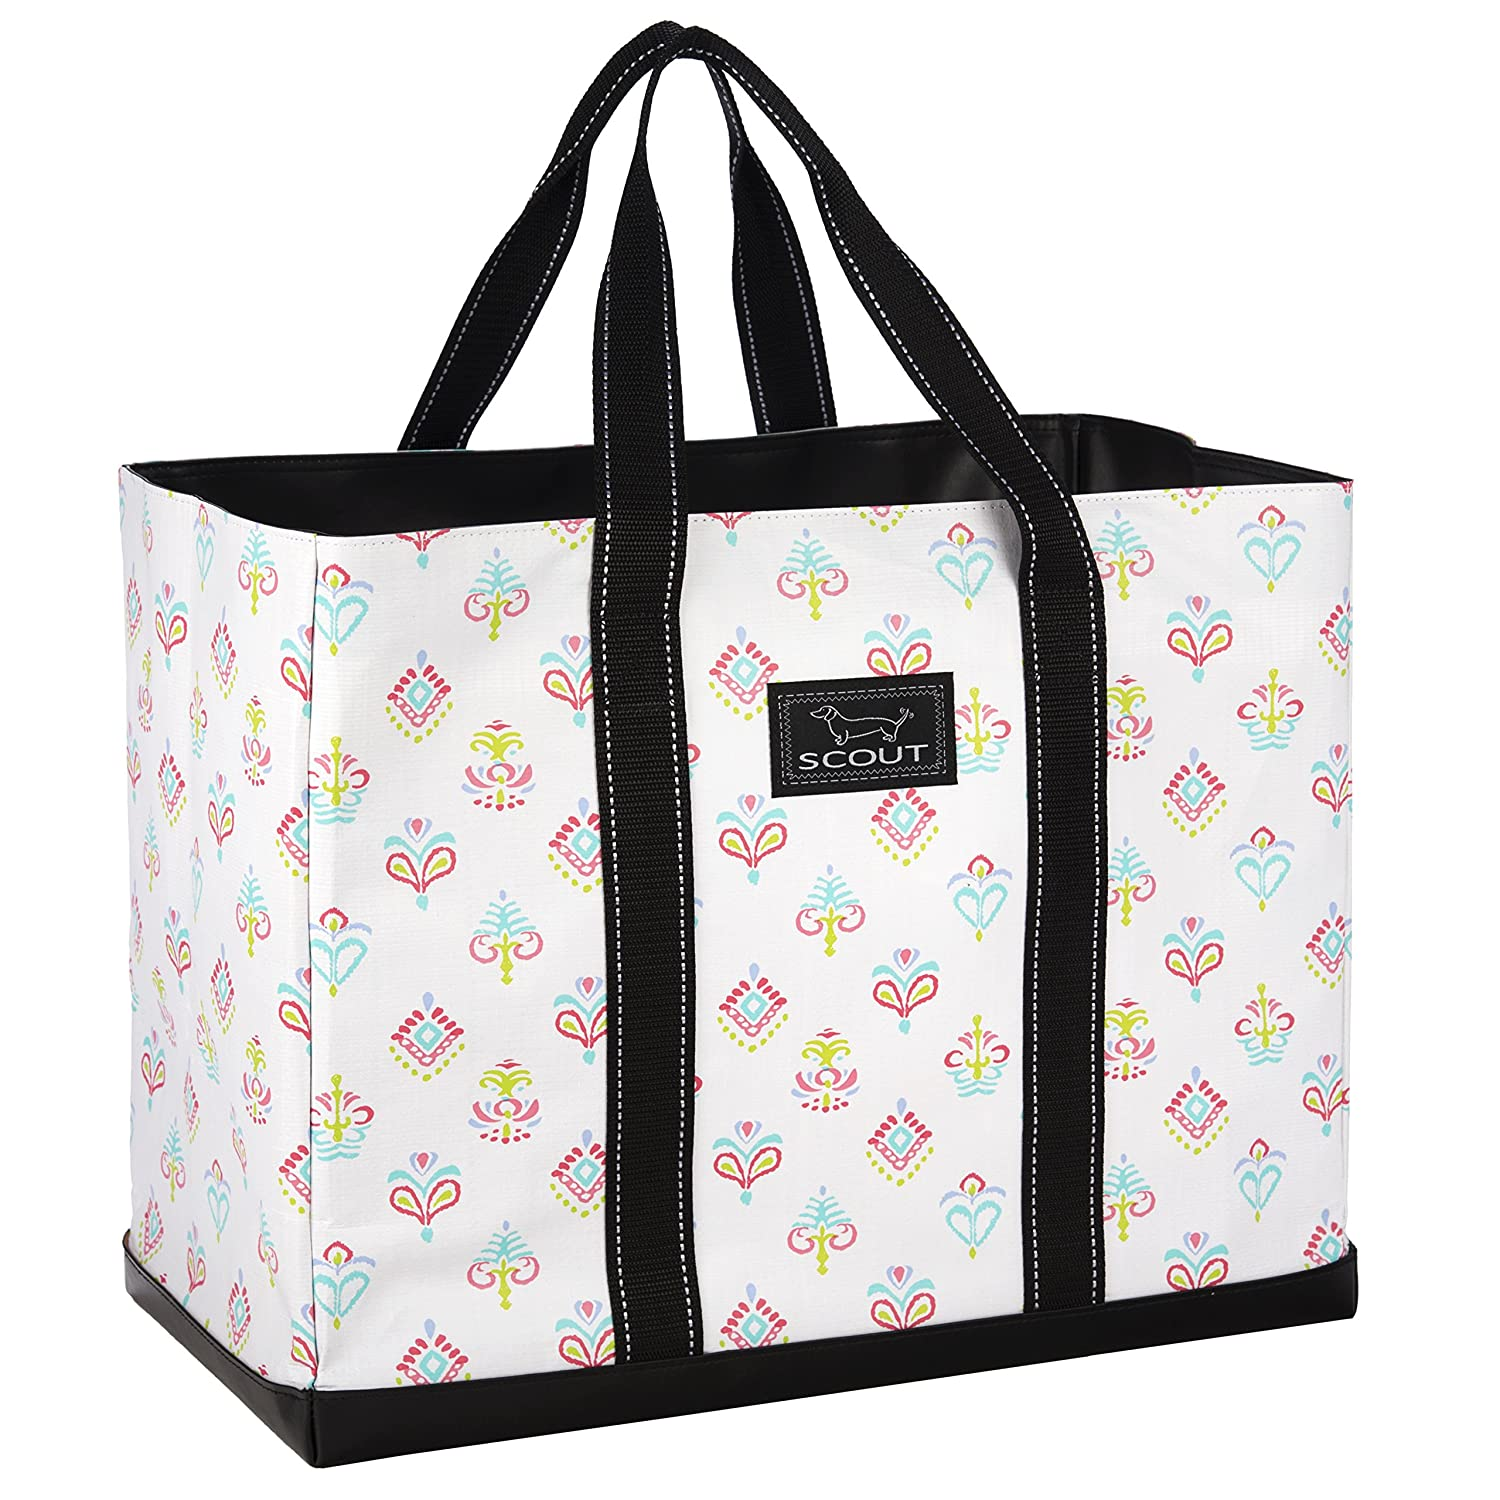 Amazon.com  SCOUT ORIGINAL DEANO Tote Bag, Water Resistant Large Tote Bag  for Women (Multiple Patterns Available) (Carnival Y all)  Shoes 8556d36514